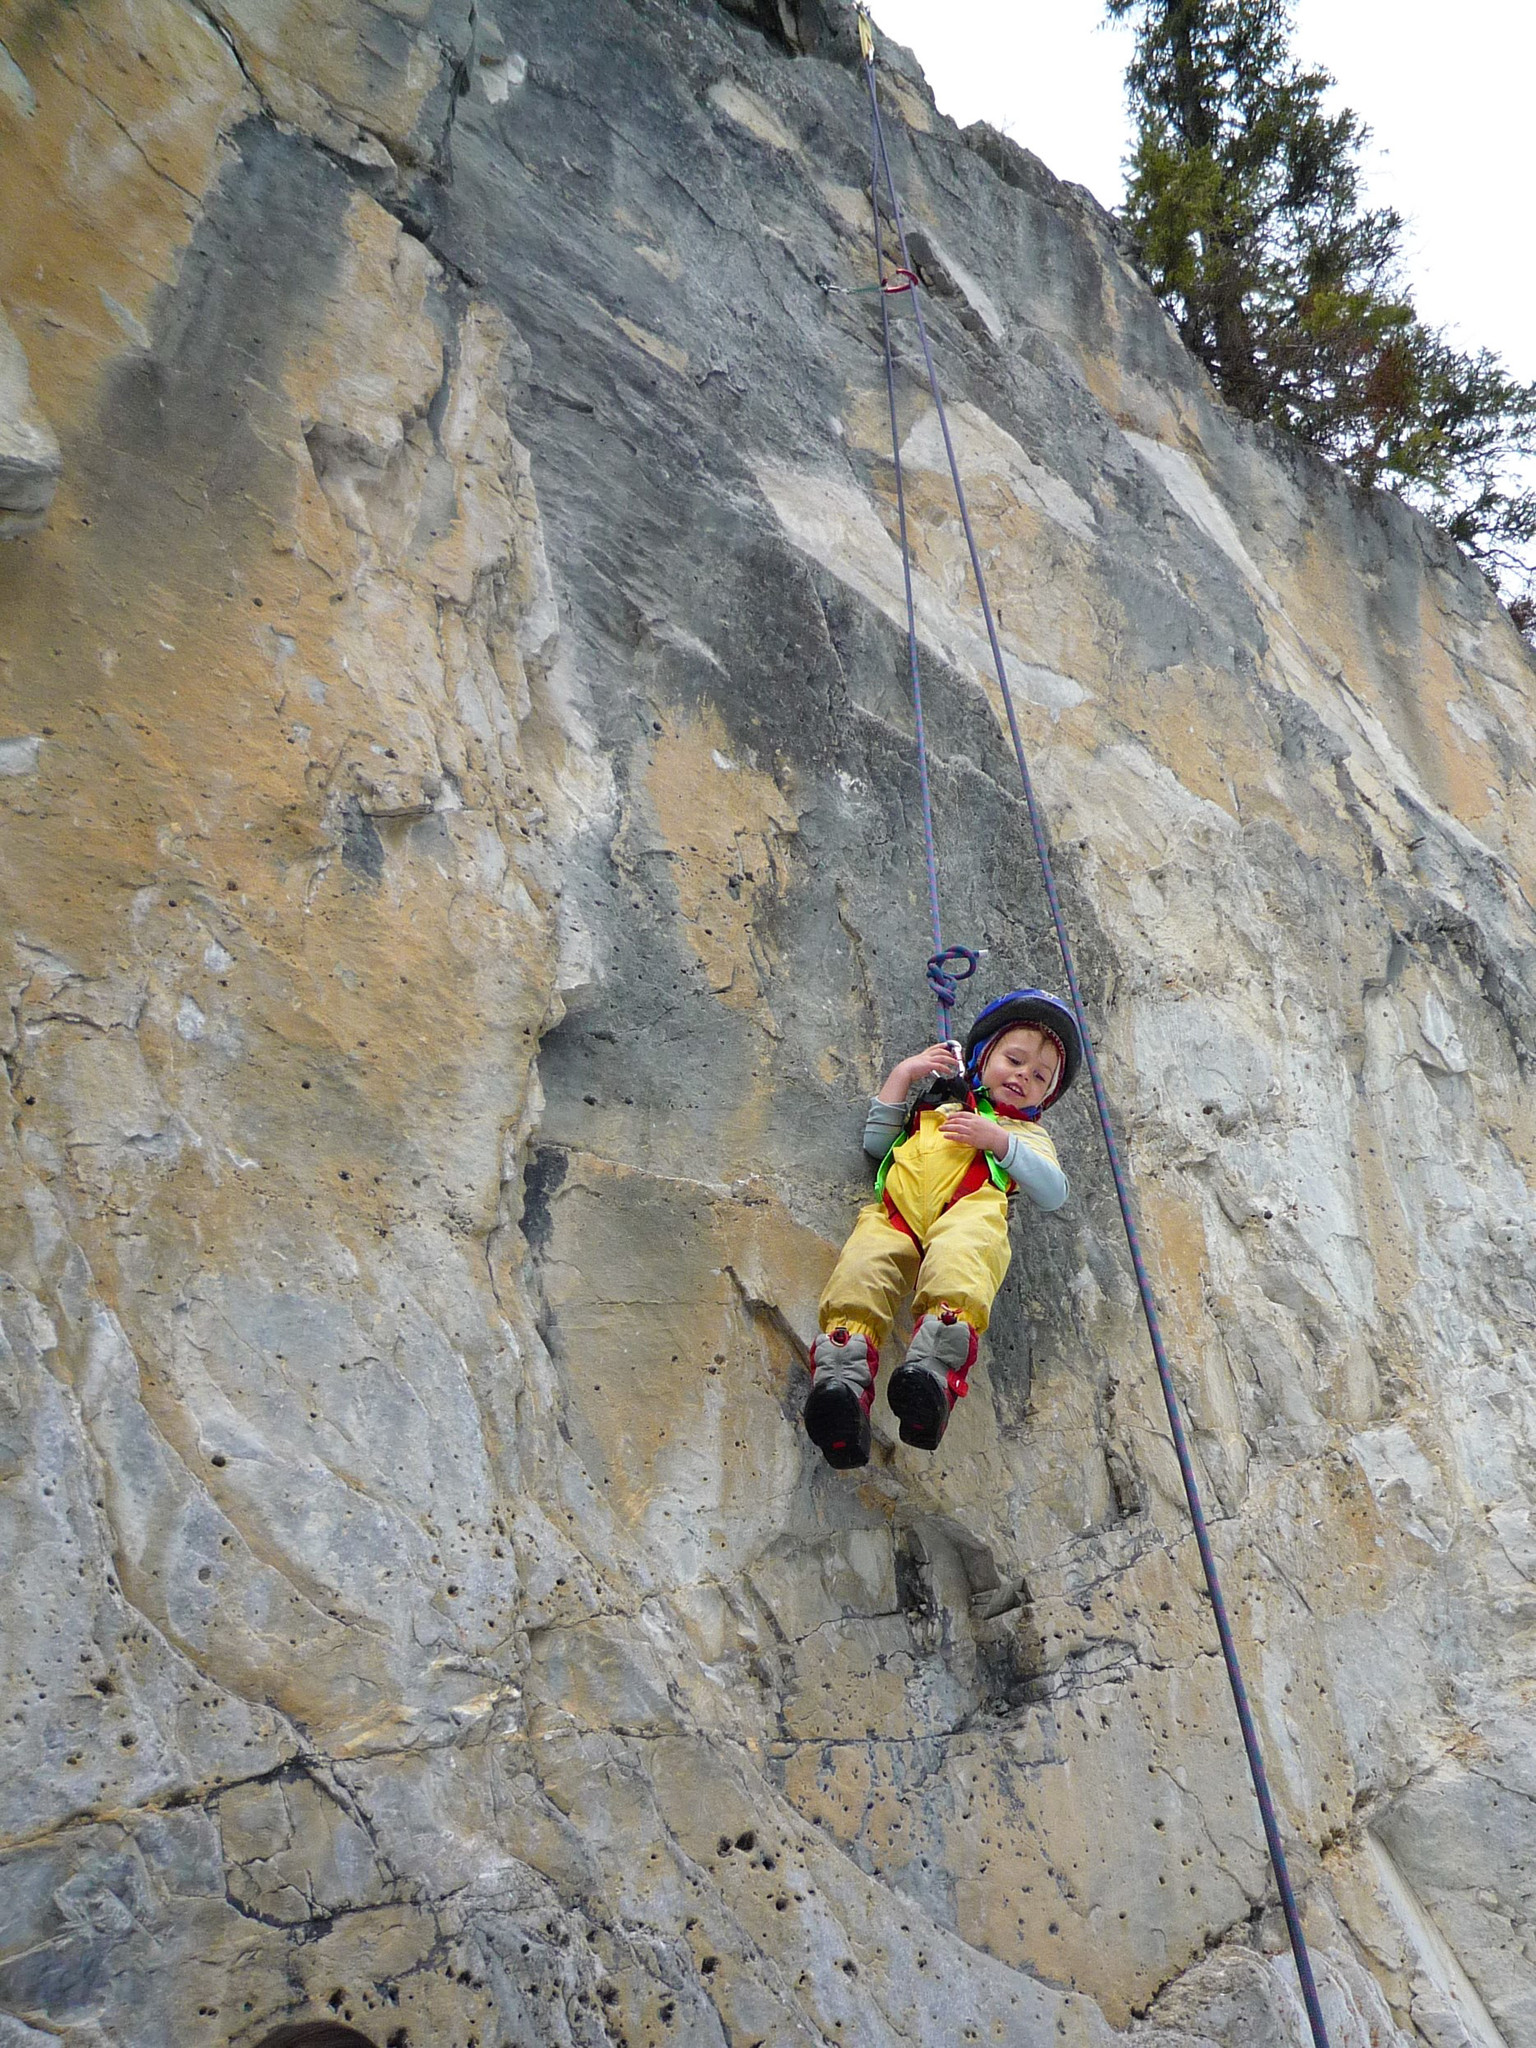 a kid swining on a climbing rope